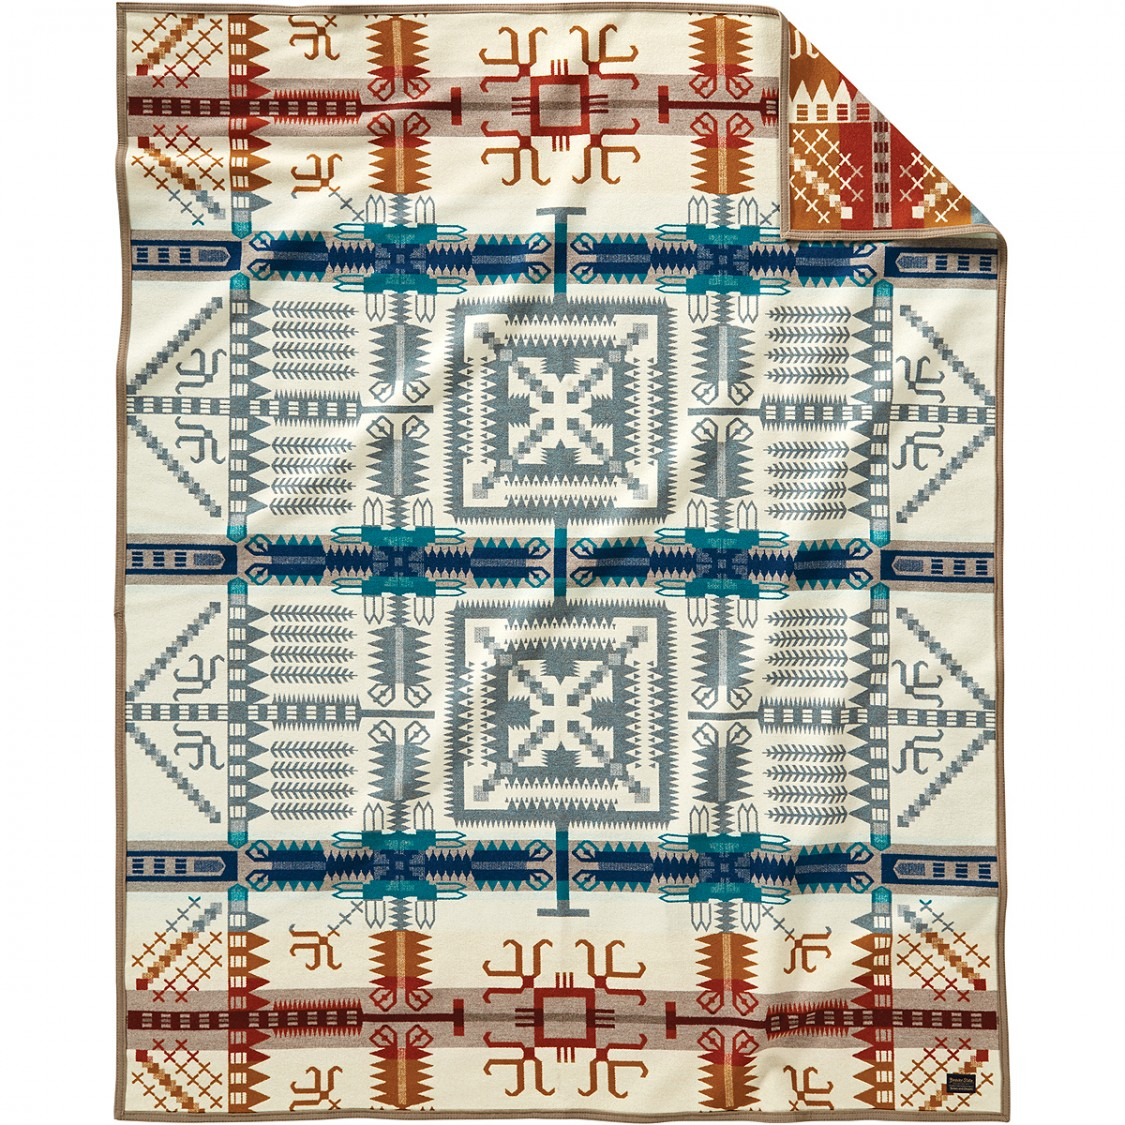 Birch Path Pendleton Blanket at Anteks Furniture Store in Dallas 1125x1125